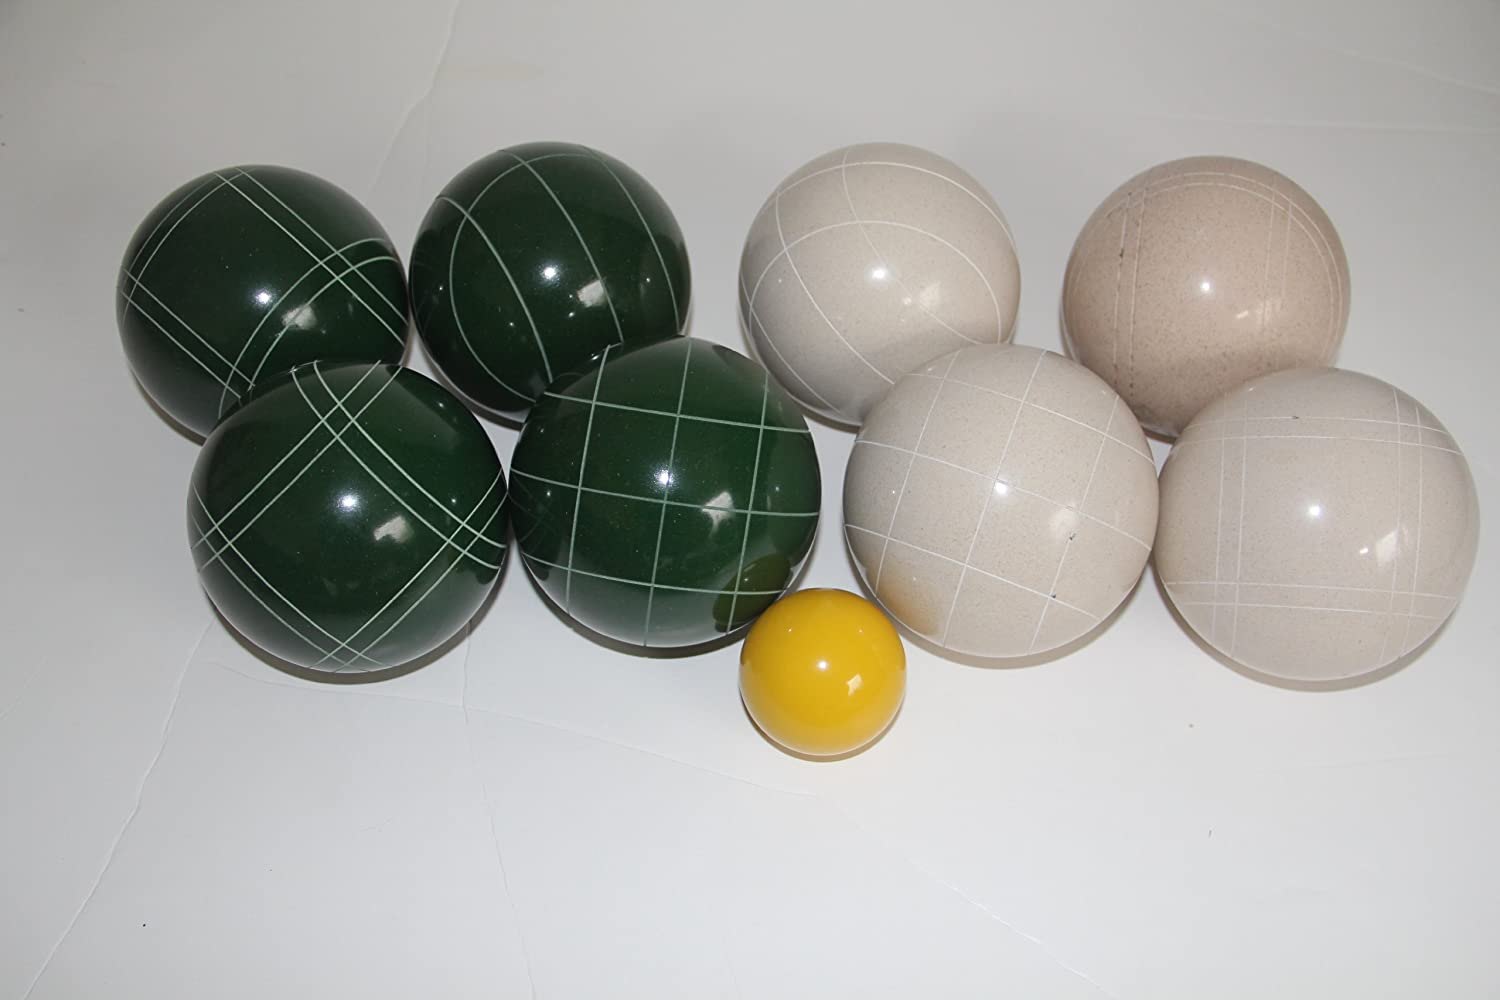 Premium Quality EPCO Tournament Bocce Set – 110mm White and Green Bocce Balls… bestellen